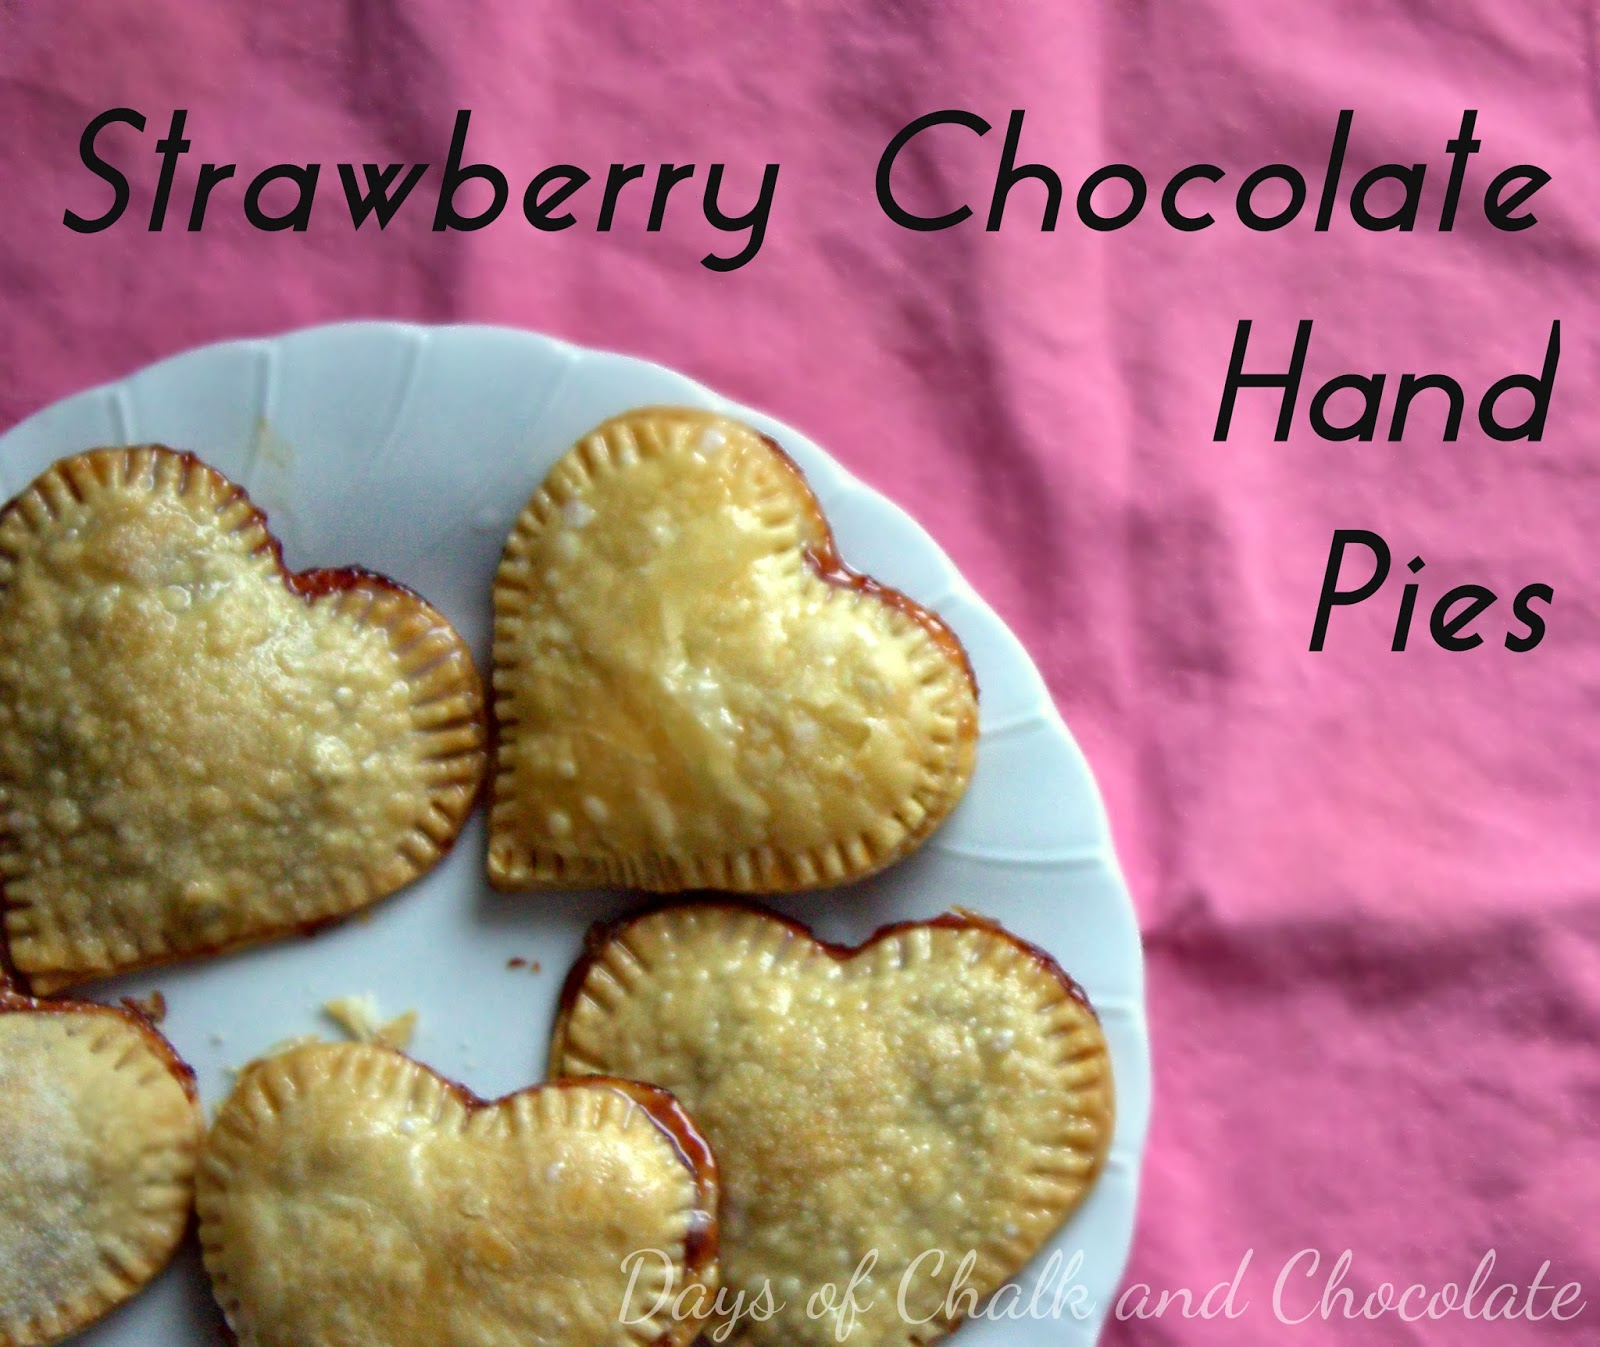 ... hand pies hand pie recipe two peas strawberry dark chocolate hand pies